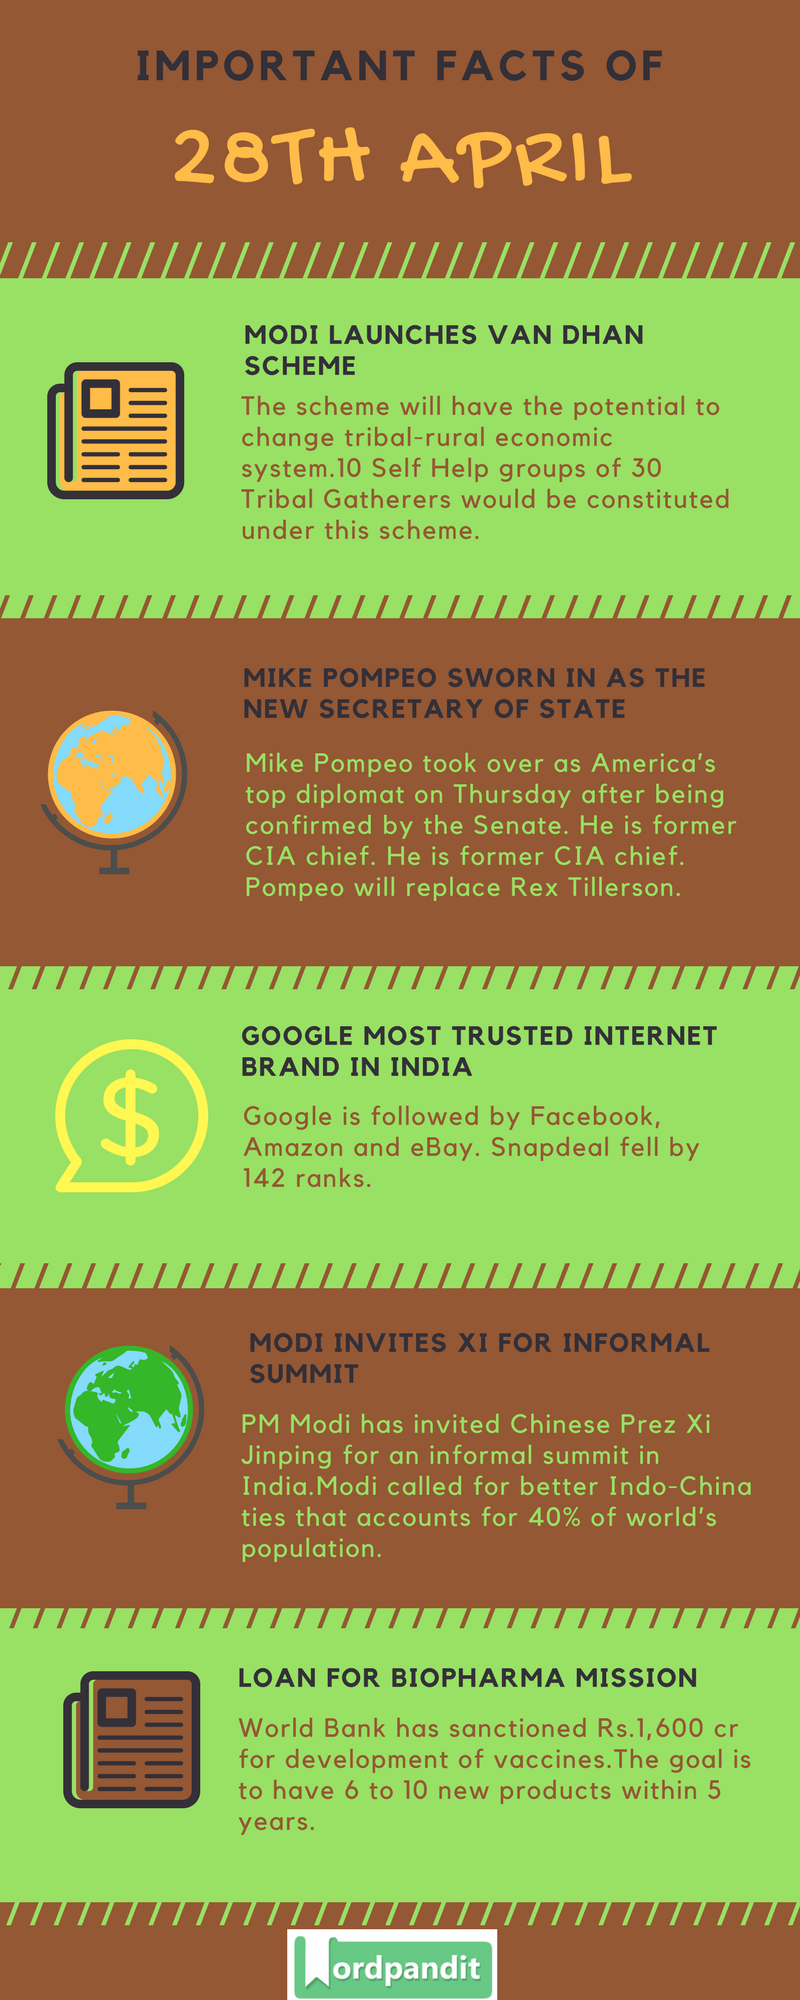 Daily Current Affairs 28 April 2018 Current Affairs Quiz April 28 2018 Current Affairs Infographic